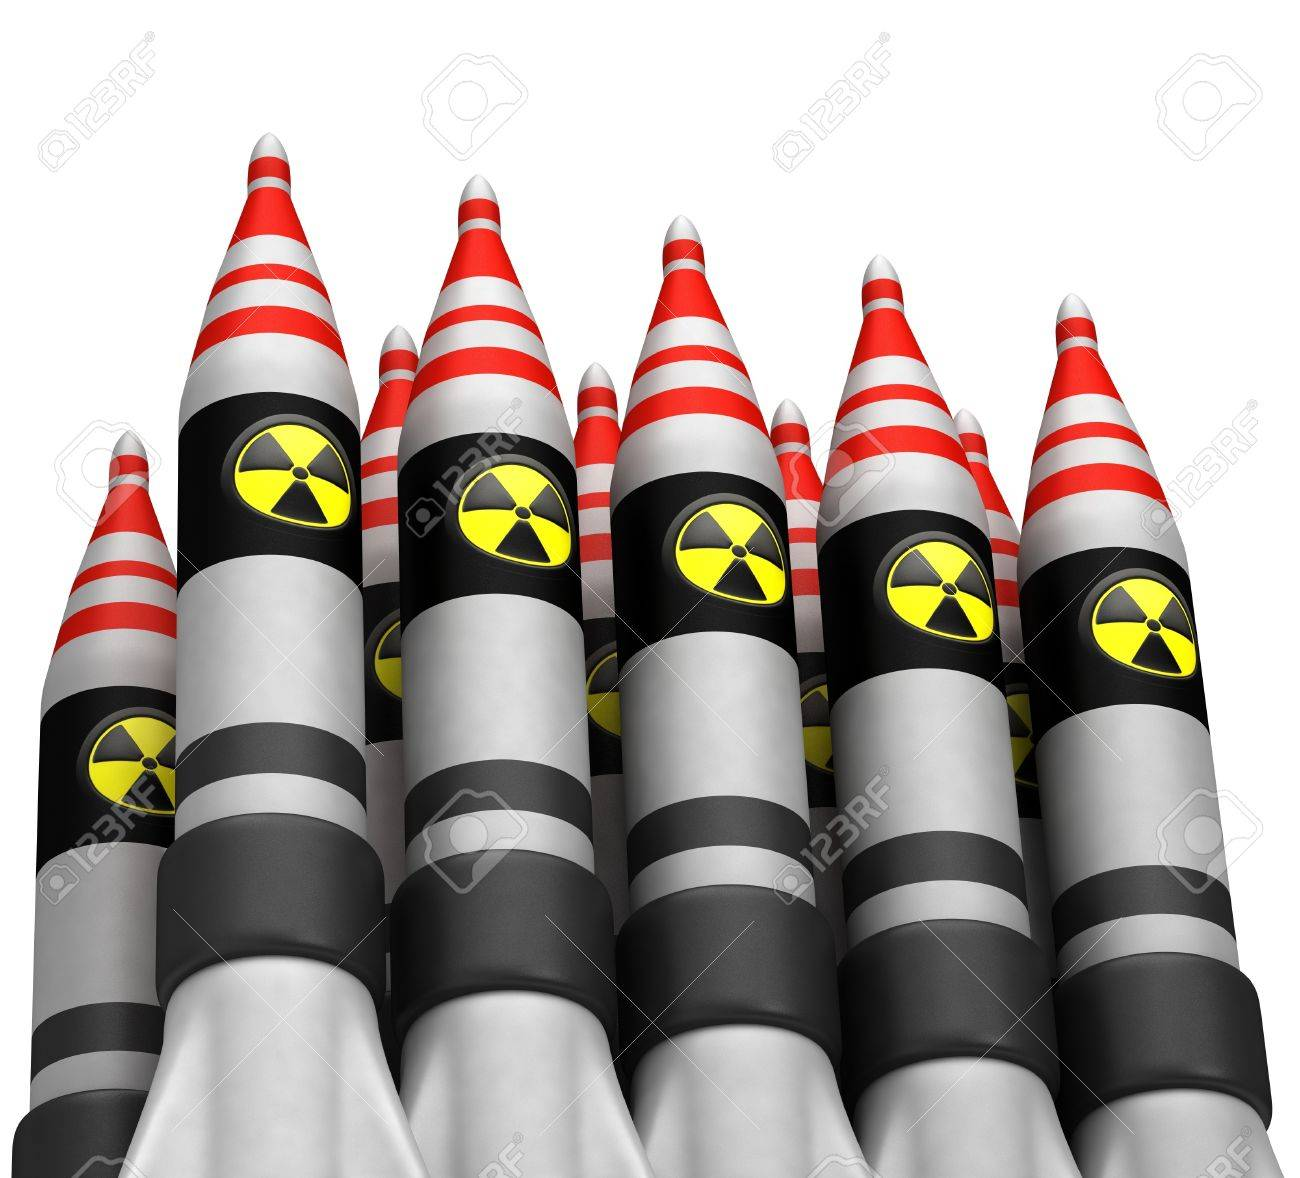 Nuclear bombs with radiation icon Stock Photo - 15135221